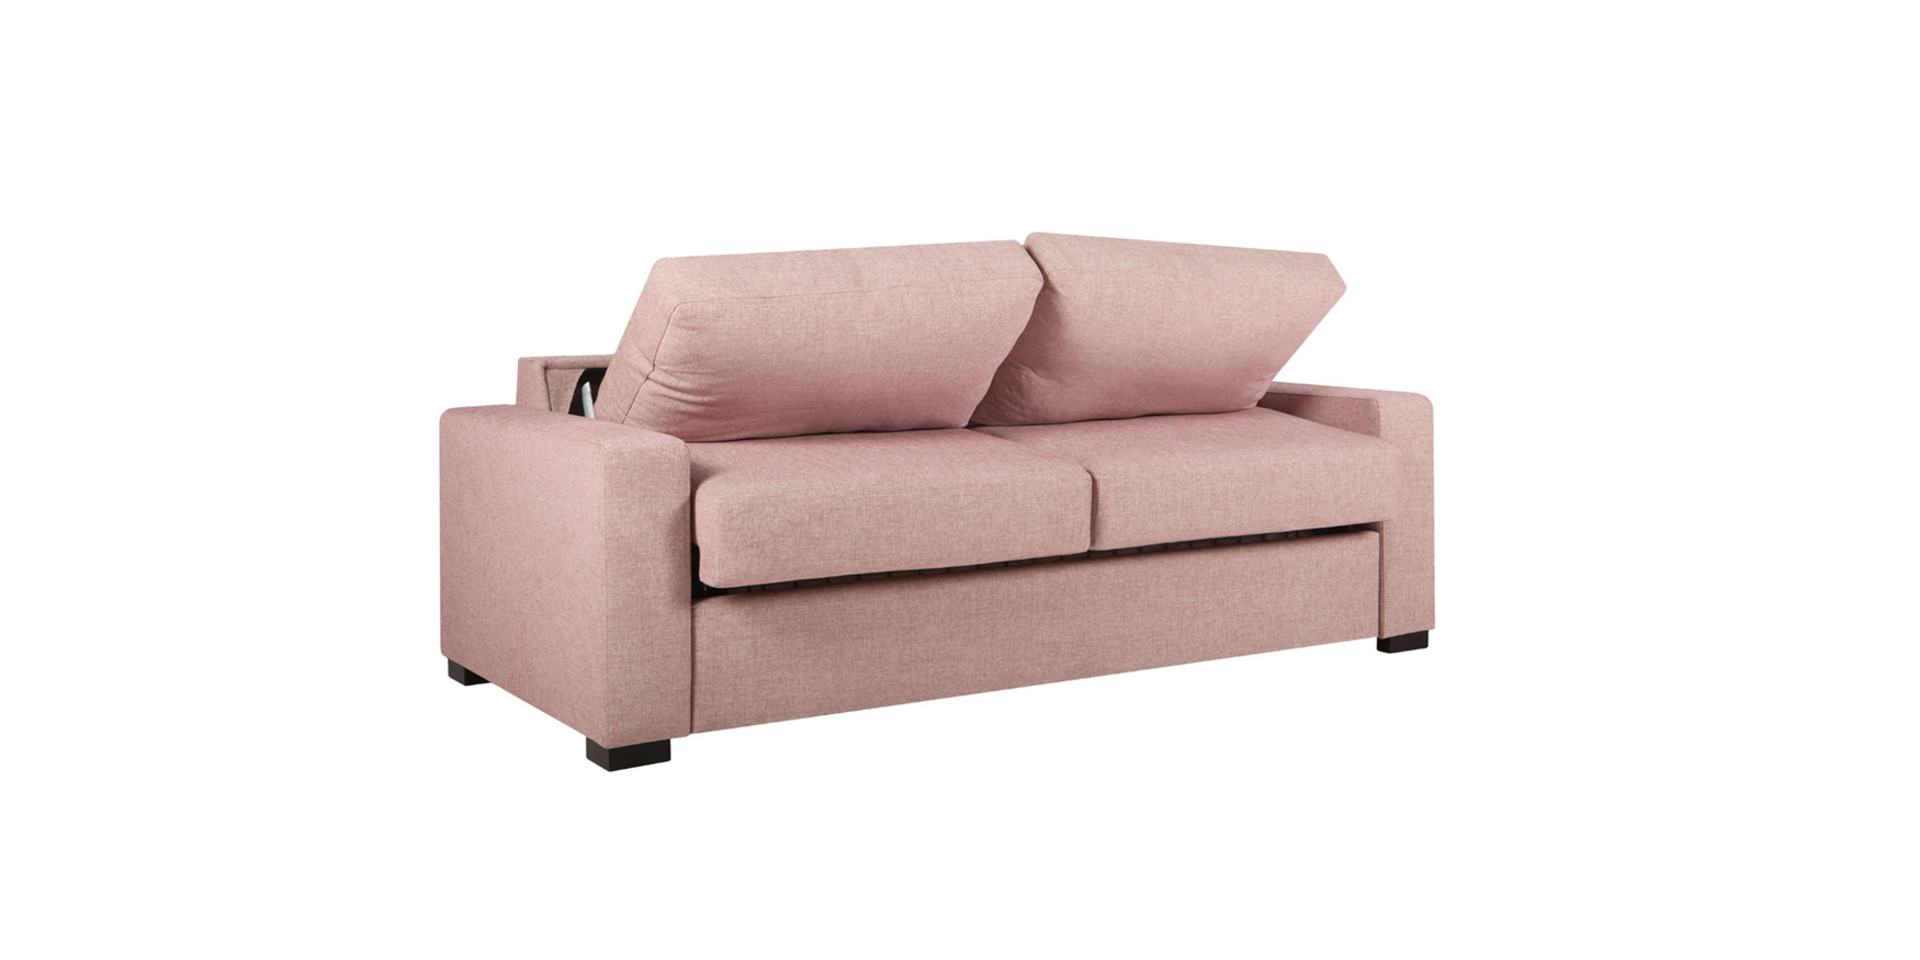 sits-lukas-canape-convertible-sofa_bed3_divine61_pink_5